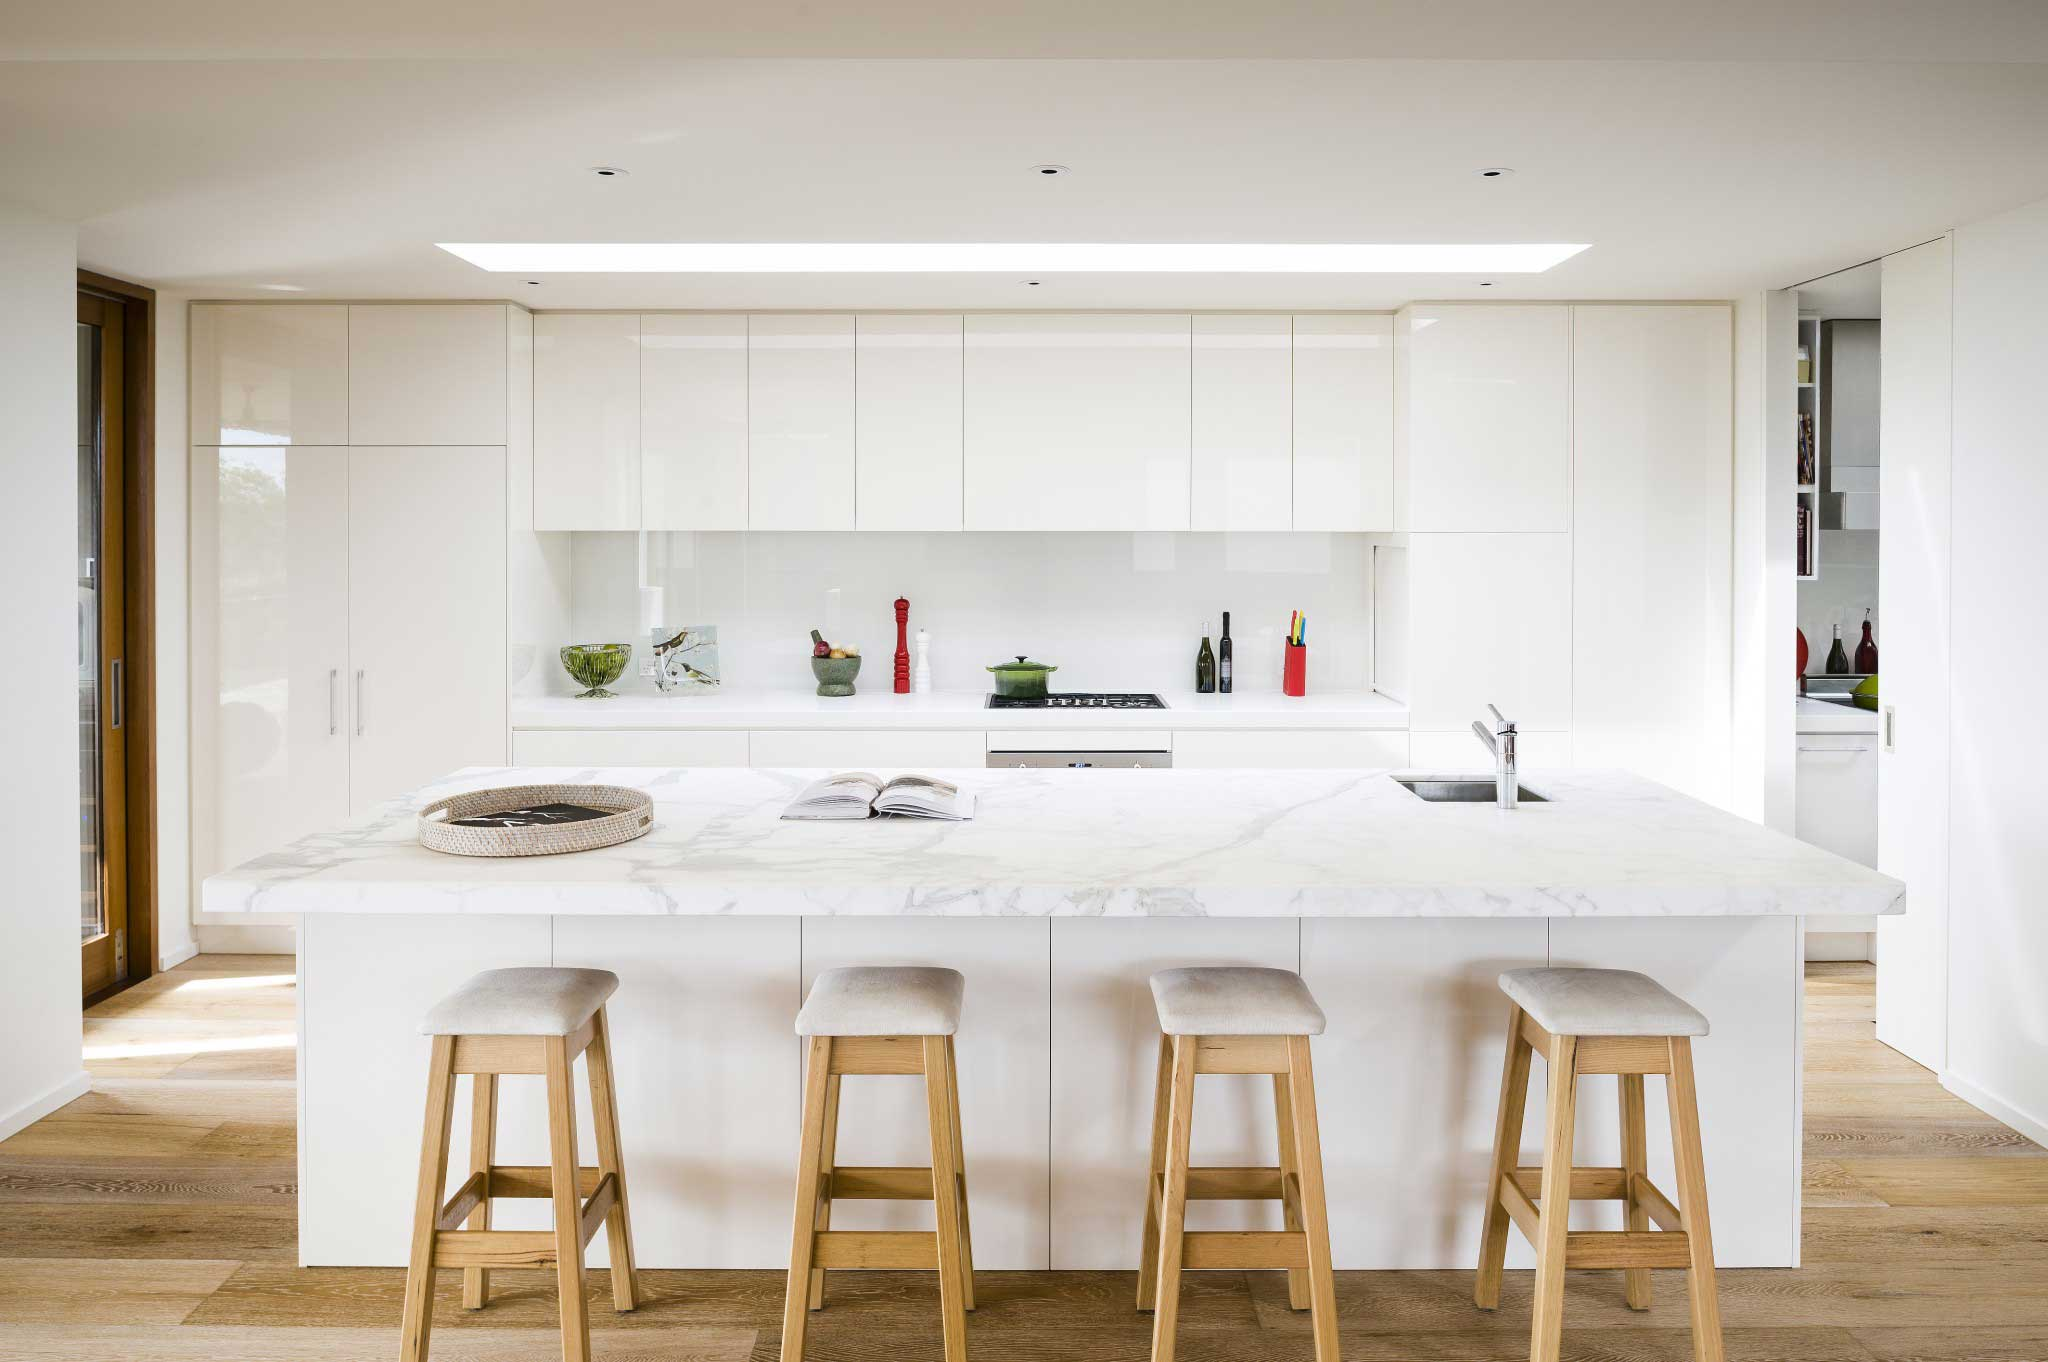 Hamptons kitchen styles melbourne rosemount kitchens for French provincial kitchen designs melbourne